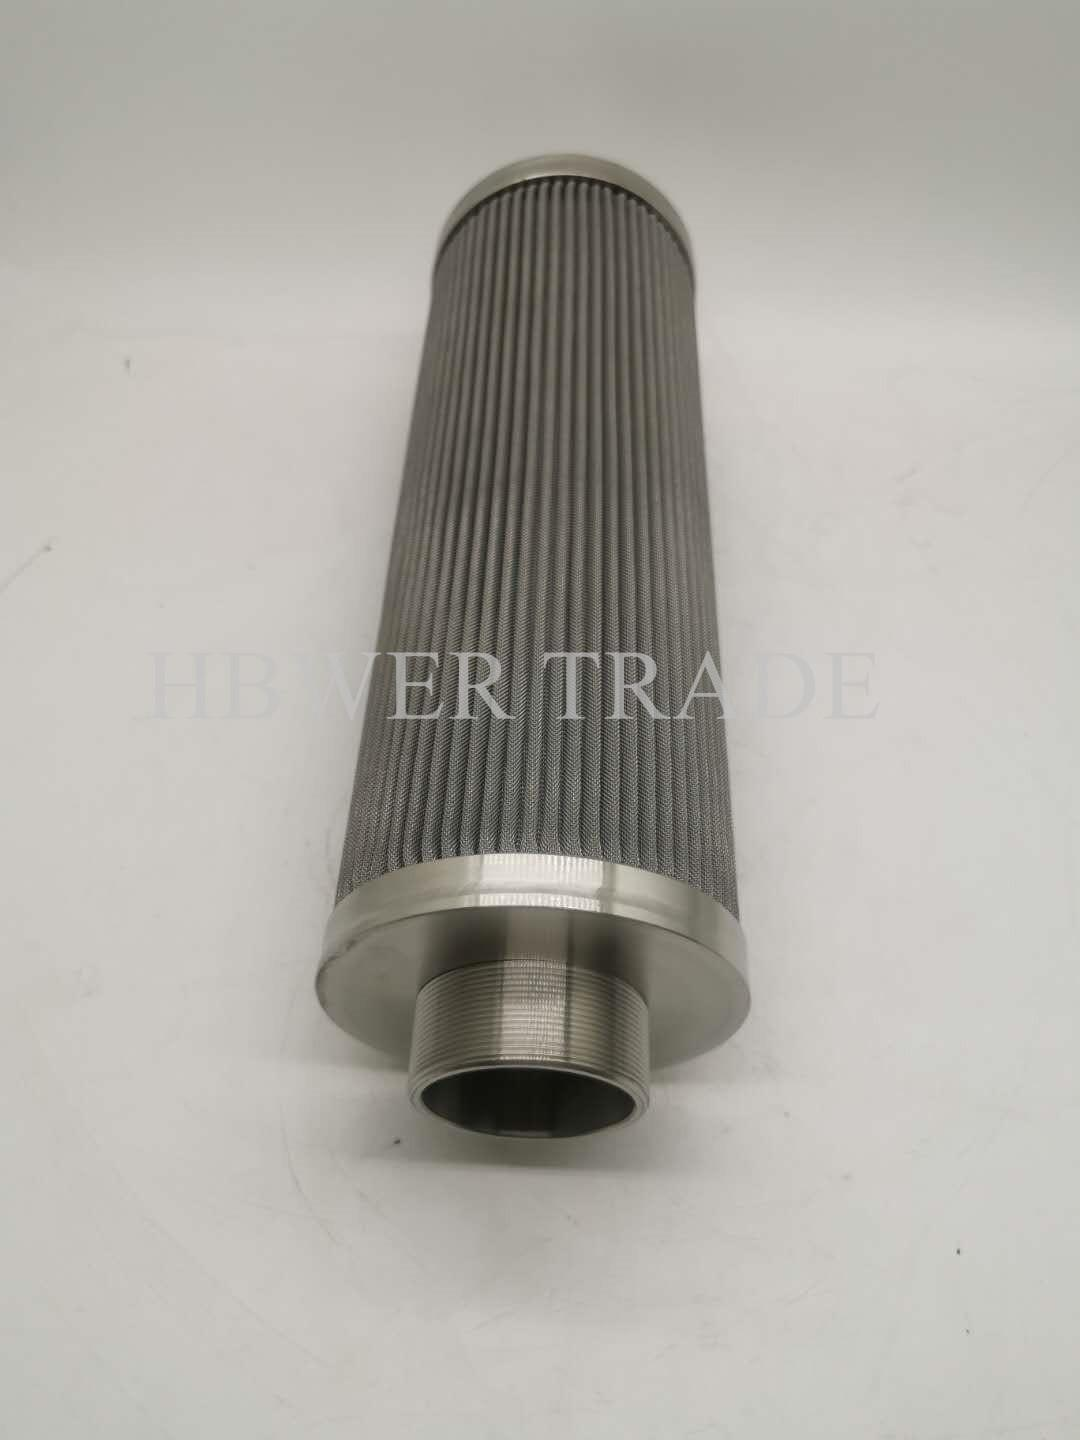 External threaded stainless steel filter element 316 304 material stainless stee 2